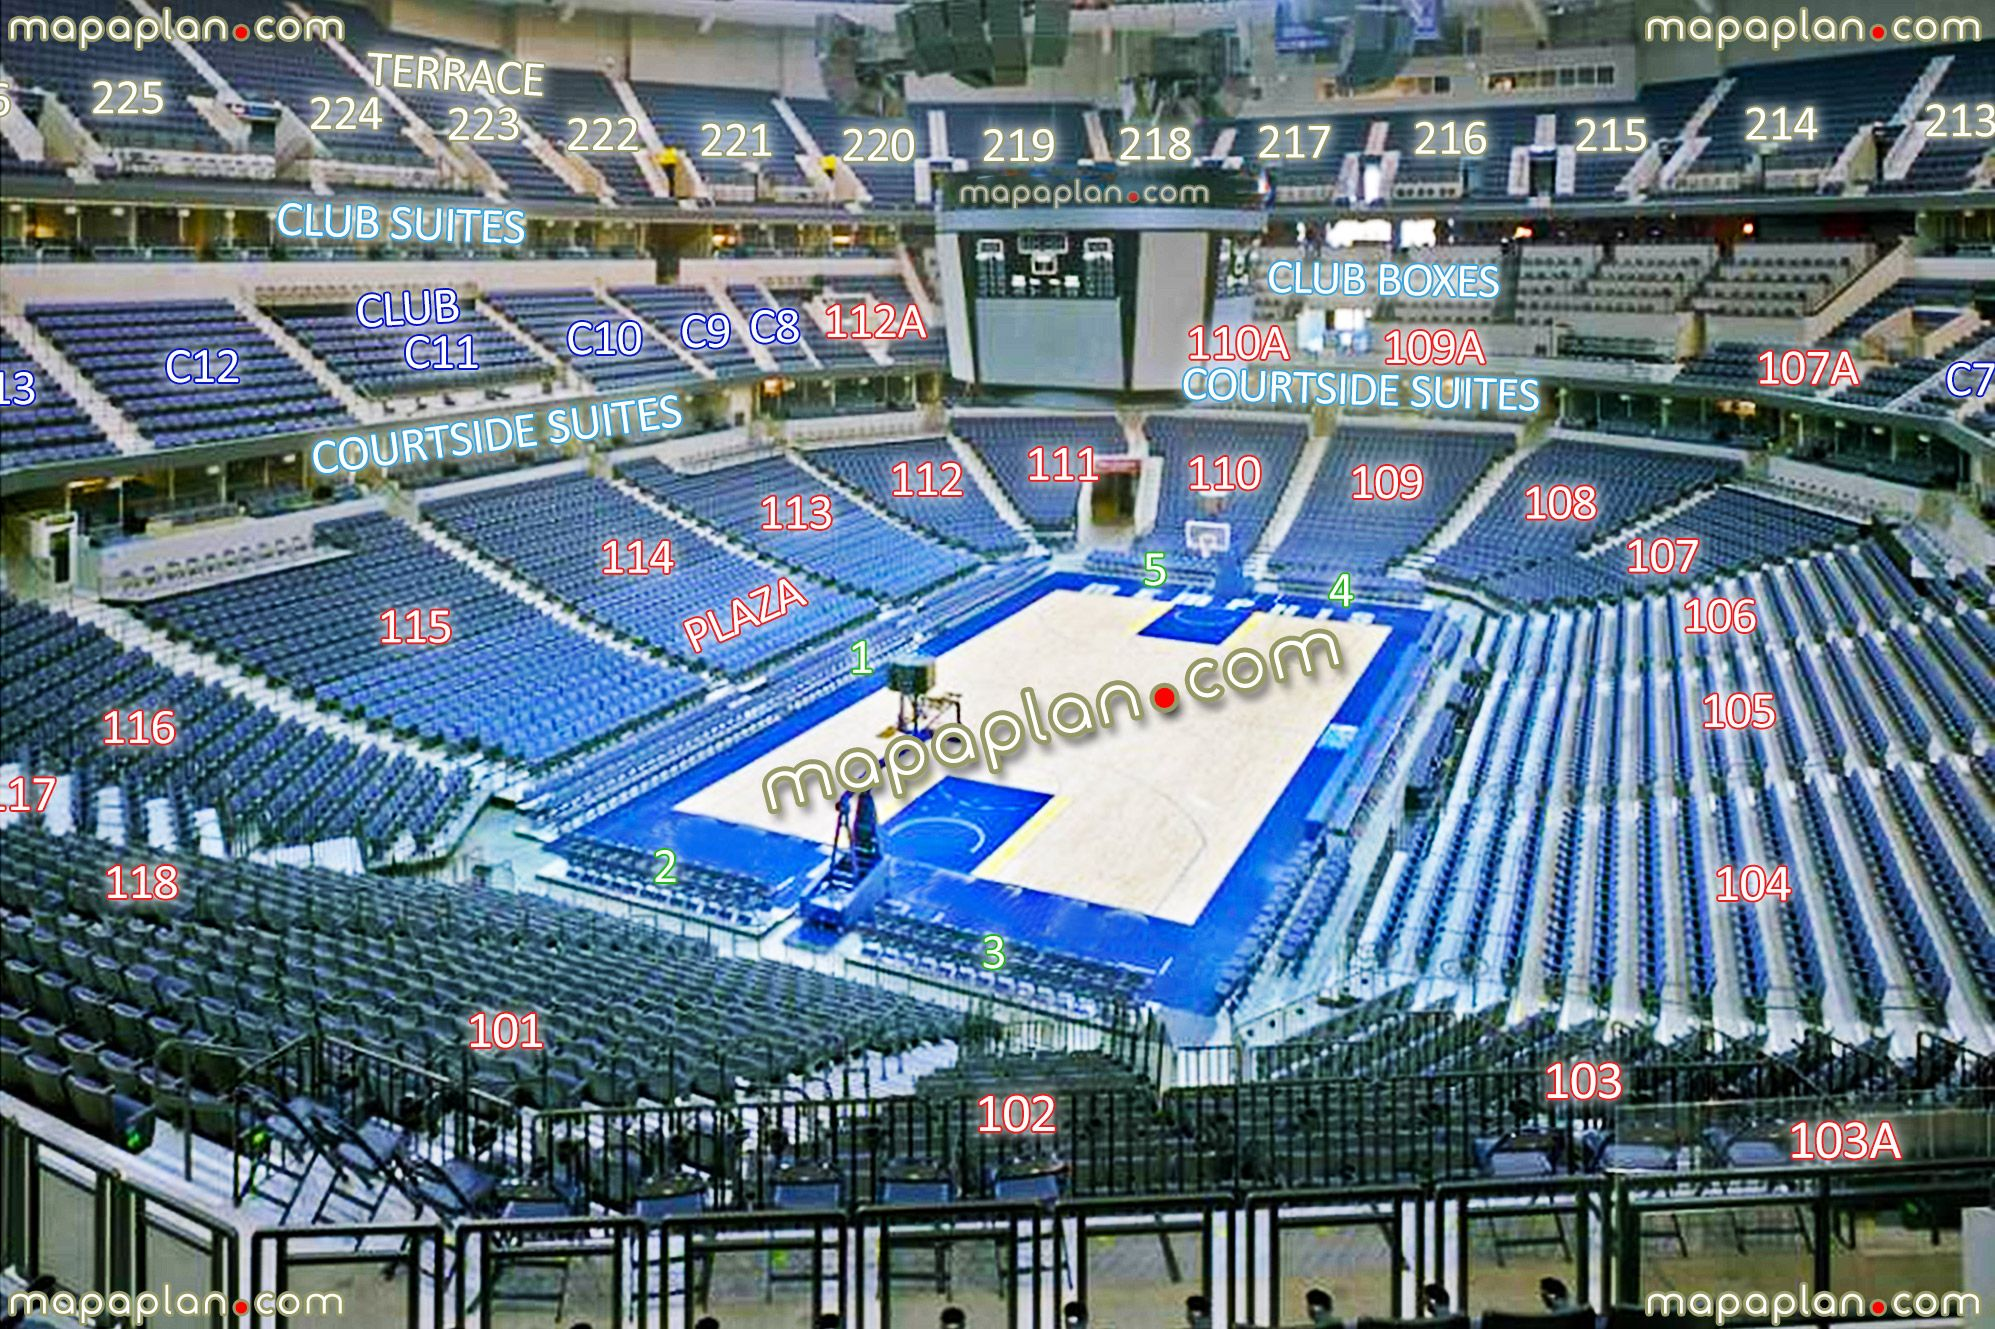 grizzlies virtual seating chart: View section 102 row hh seat 6 grizzlies basketball games